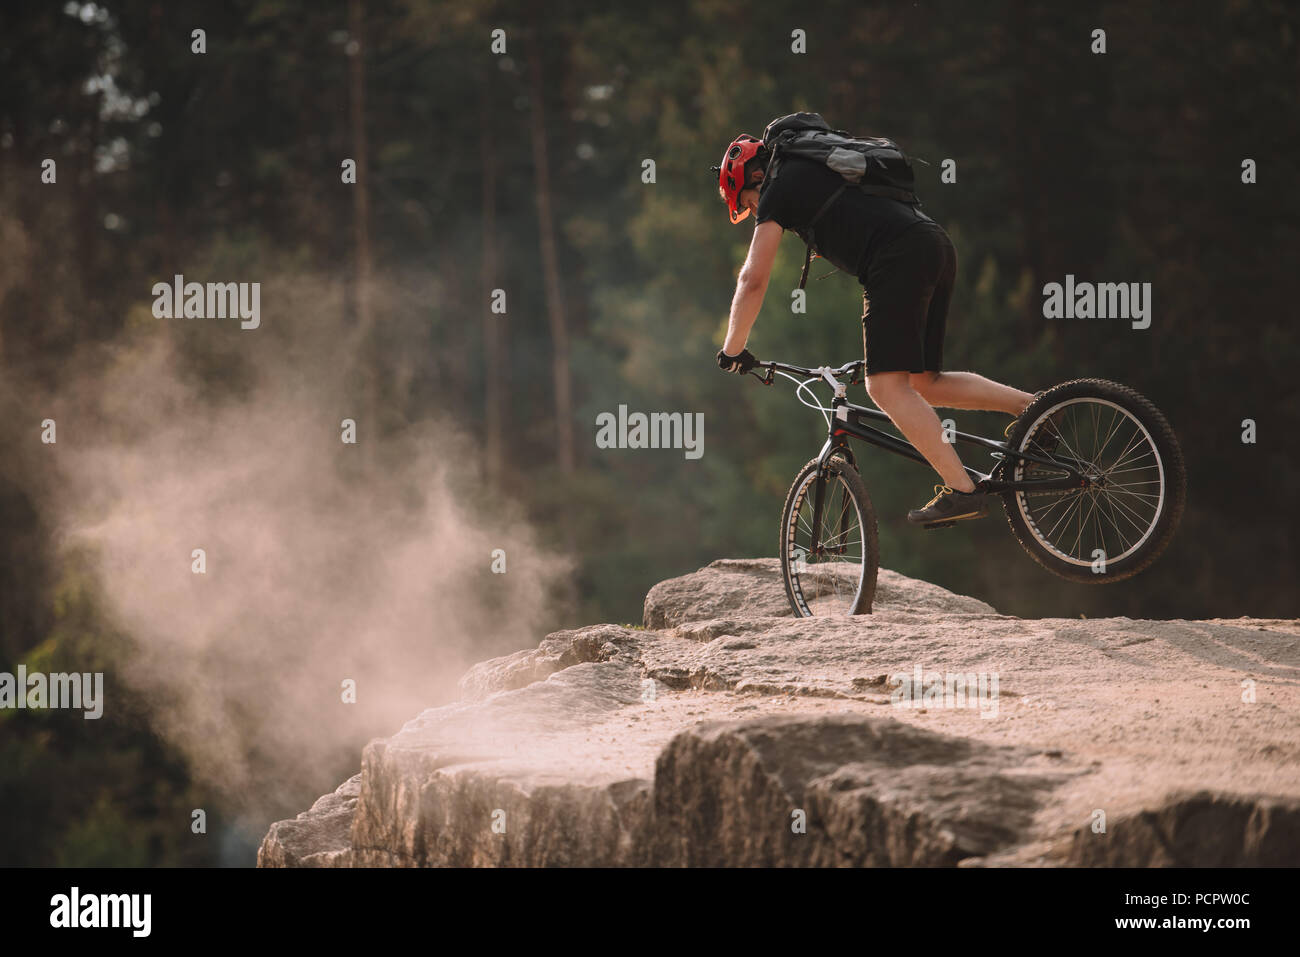 young trial biker balancing on front wheel on rocks outdoors - Stock Image